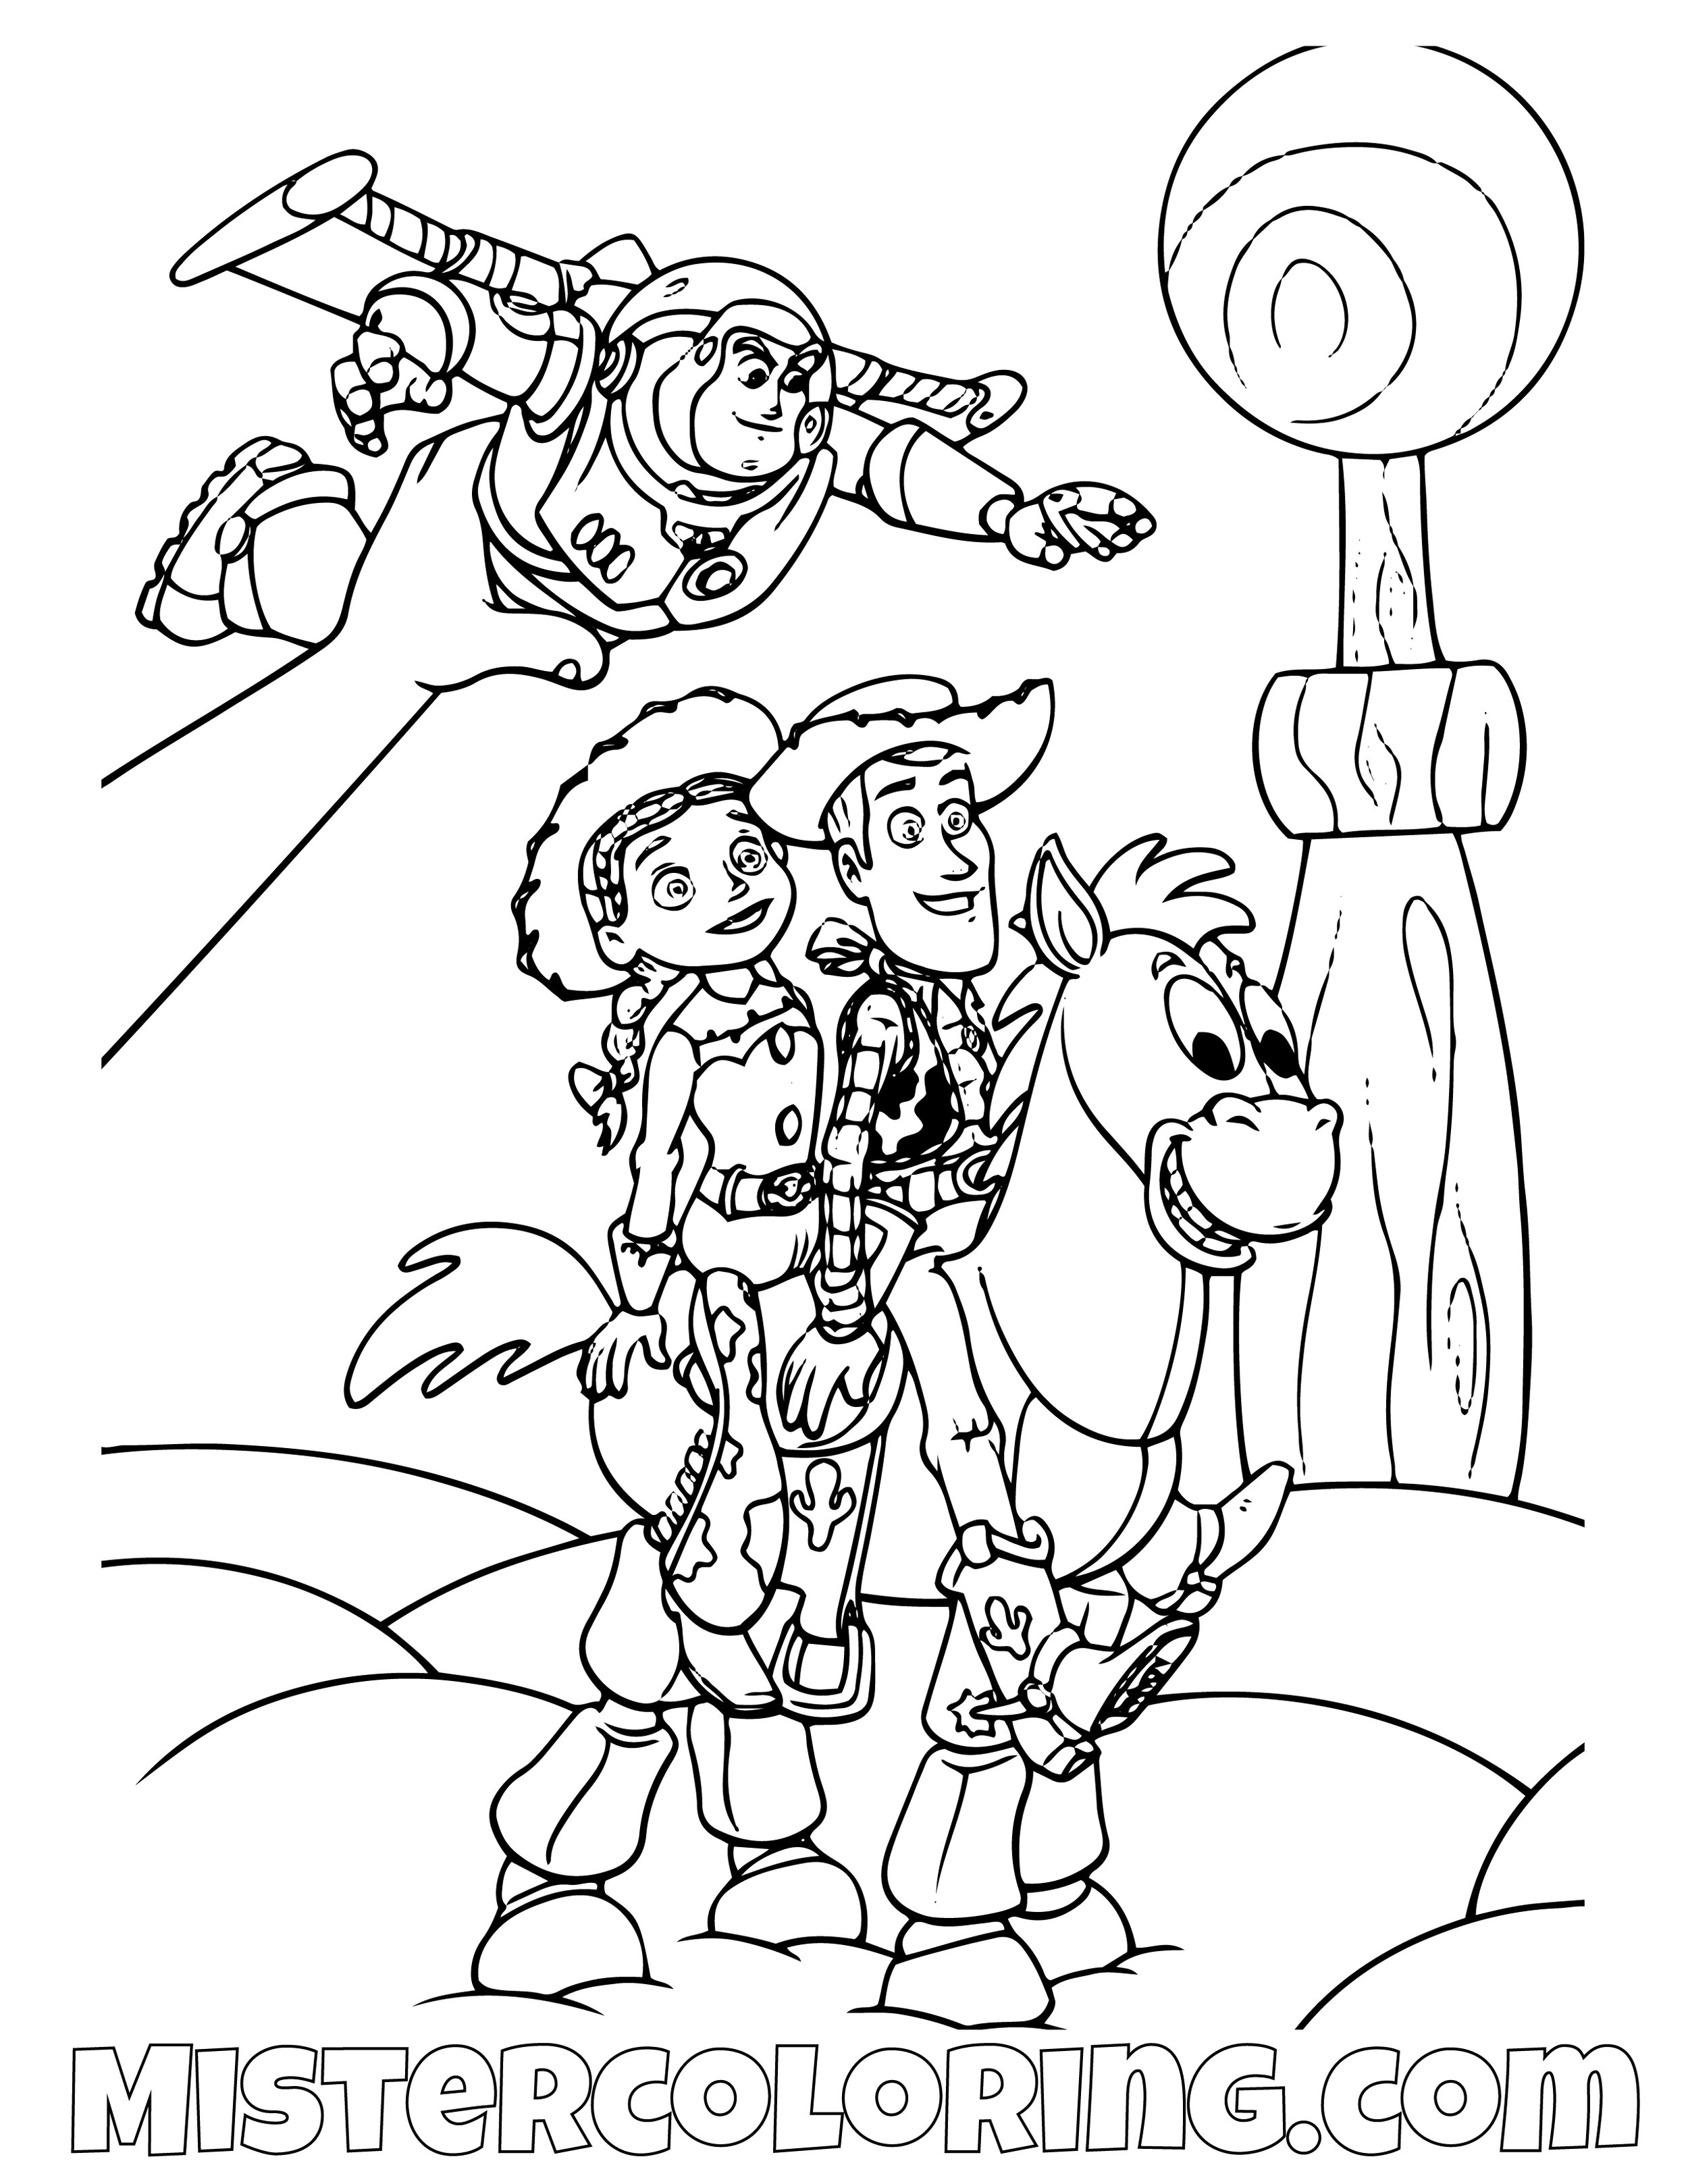 Andy Playing With Buzz Lightyear Jessie Sheriff Woody And Bullseye Toy Story Coloring Page